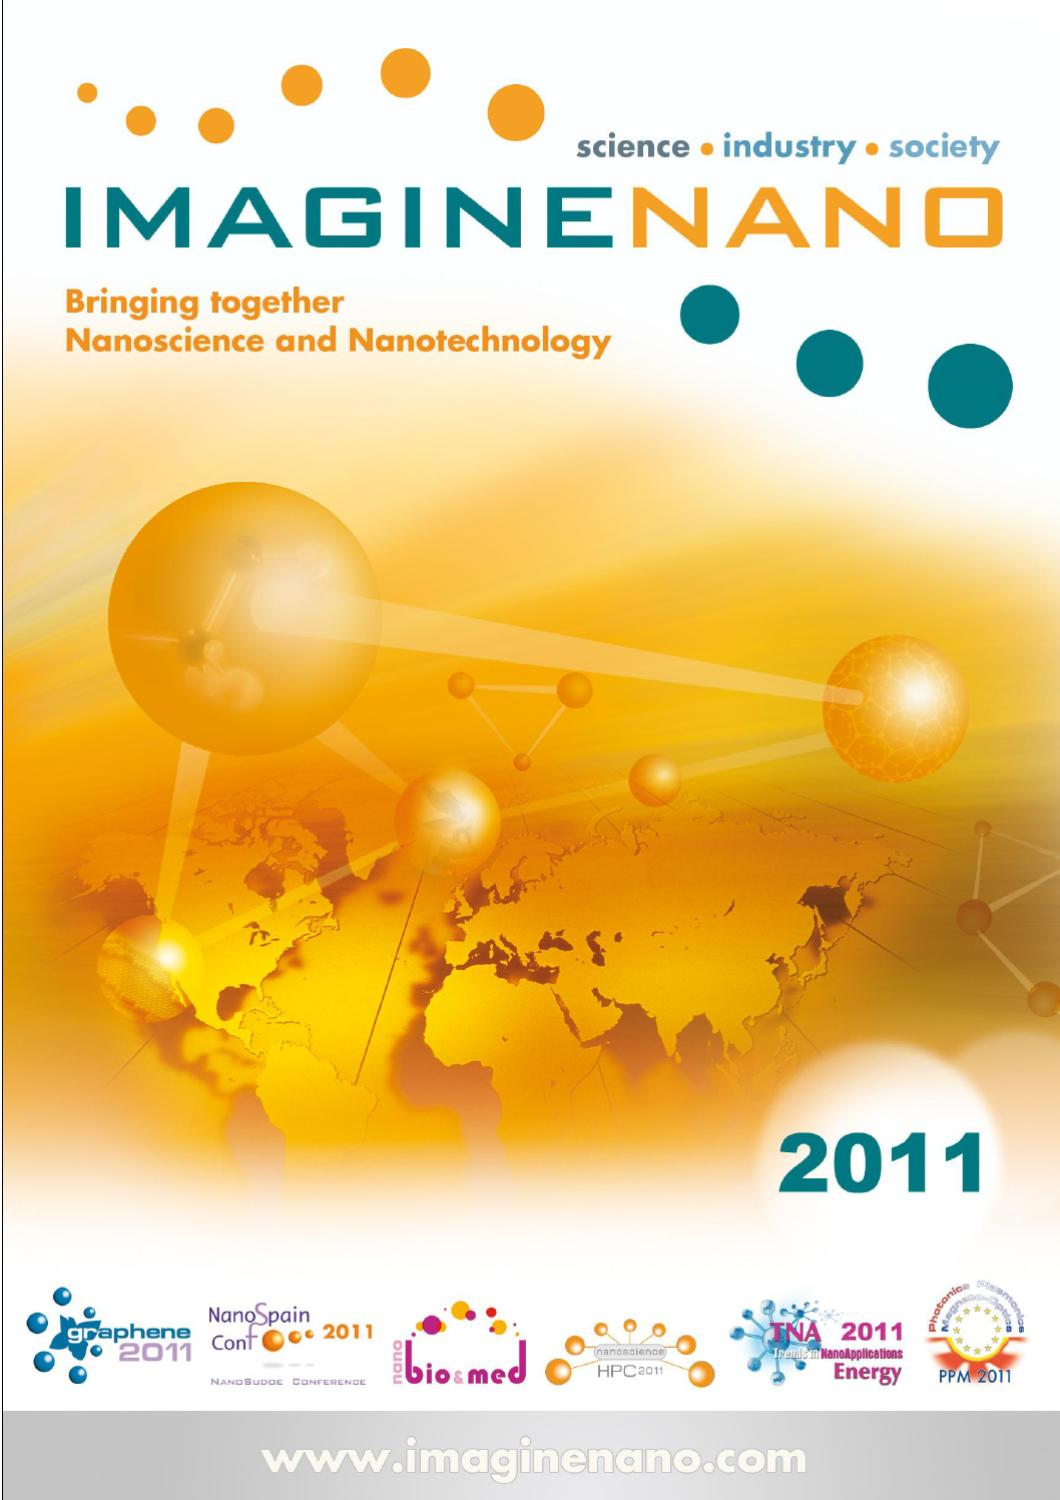 Imaginenano Abstract Booklet By Phantoms Foundation Issuu